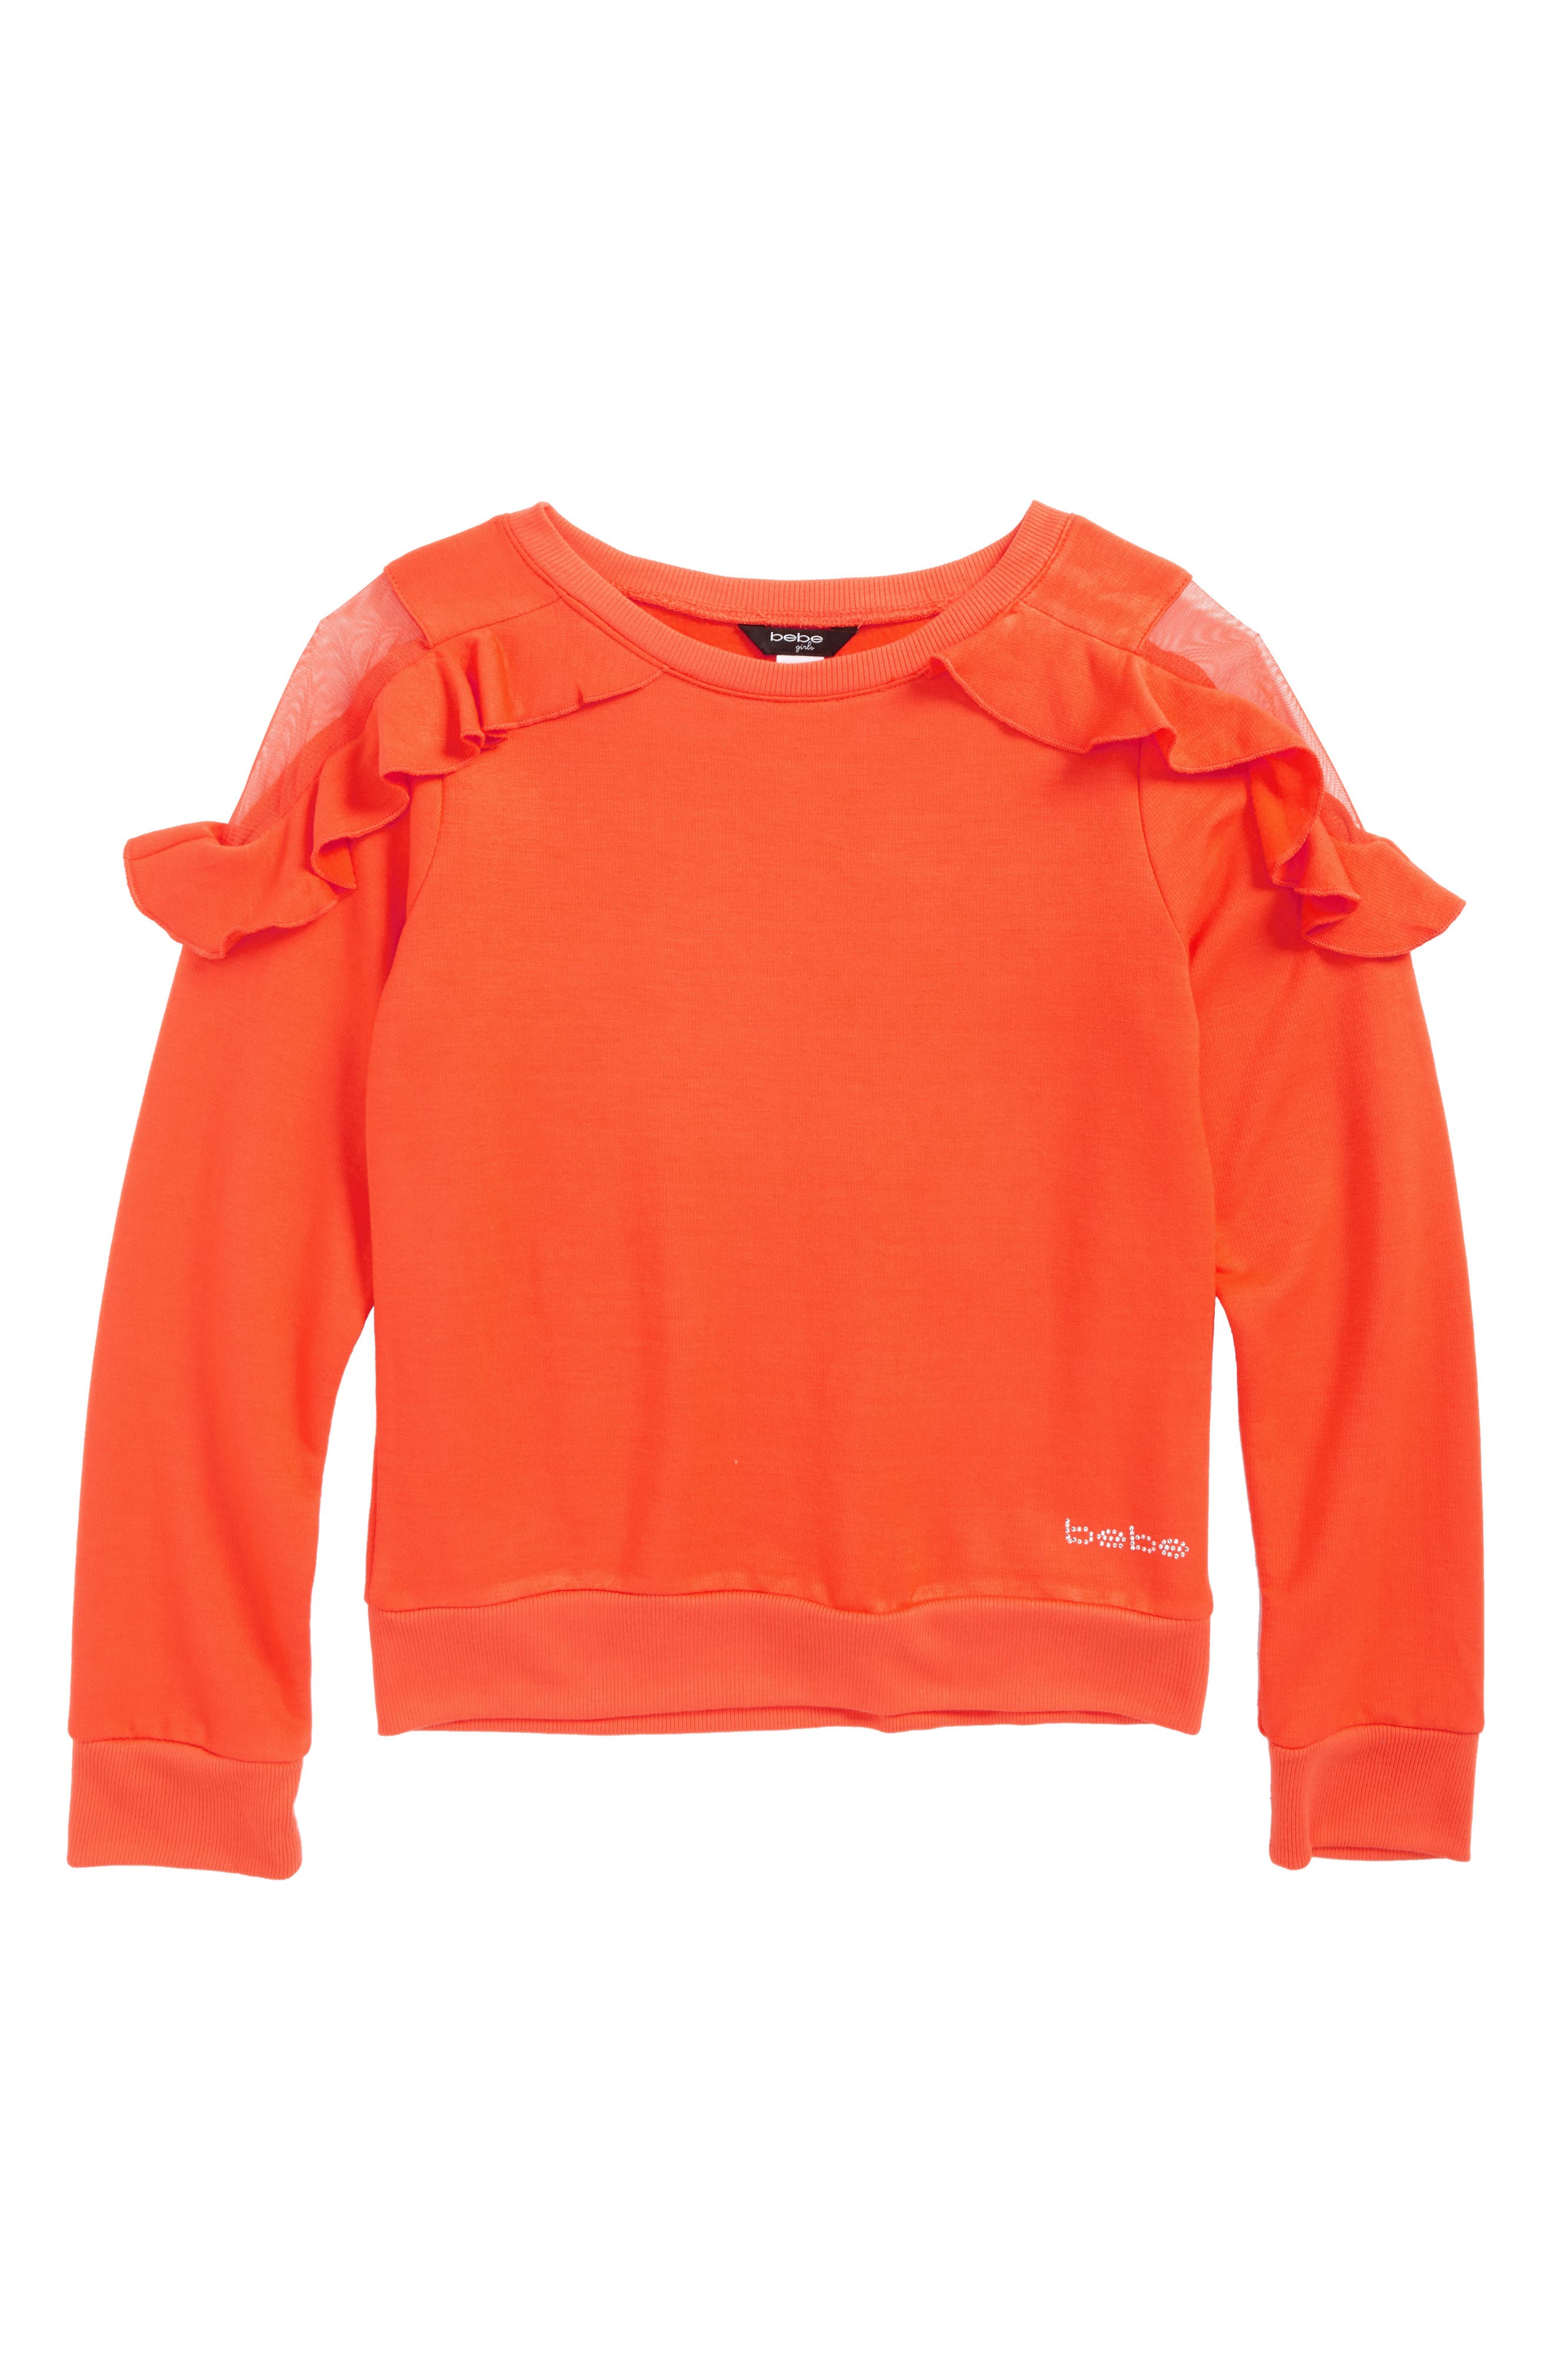 Main Image - bebe Mesh Shoulder Sweatshirt (Big Girls)